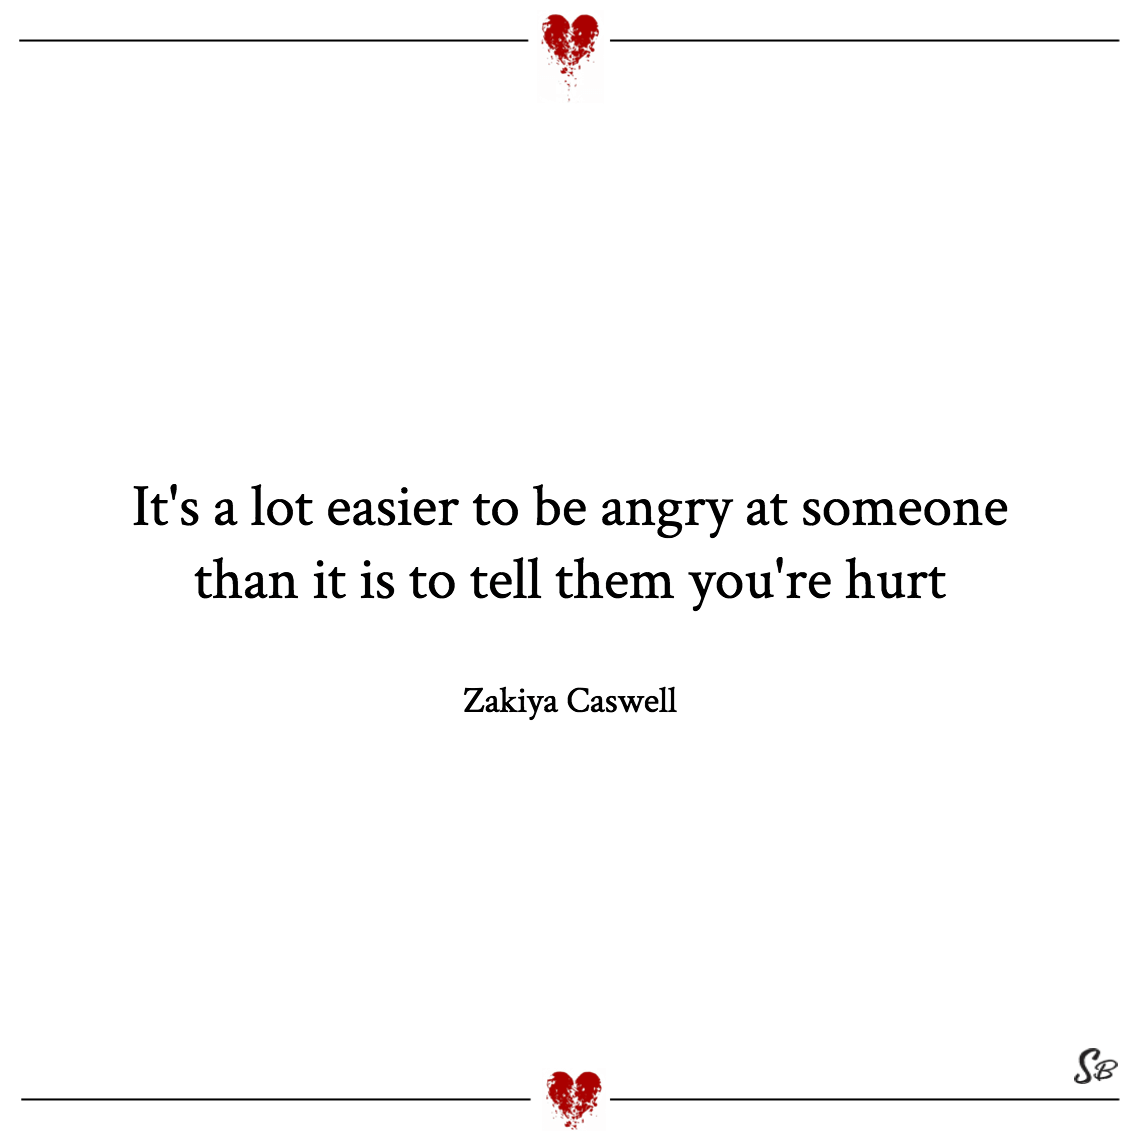 It's a lot easier to be angry at someone than it is to tell them you're hurt zakiya caswell